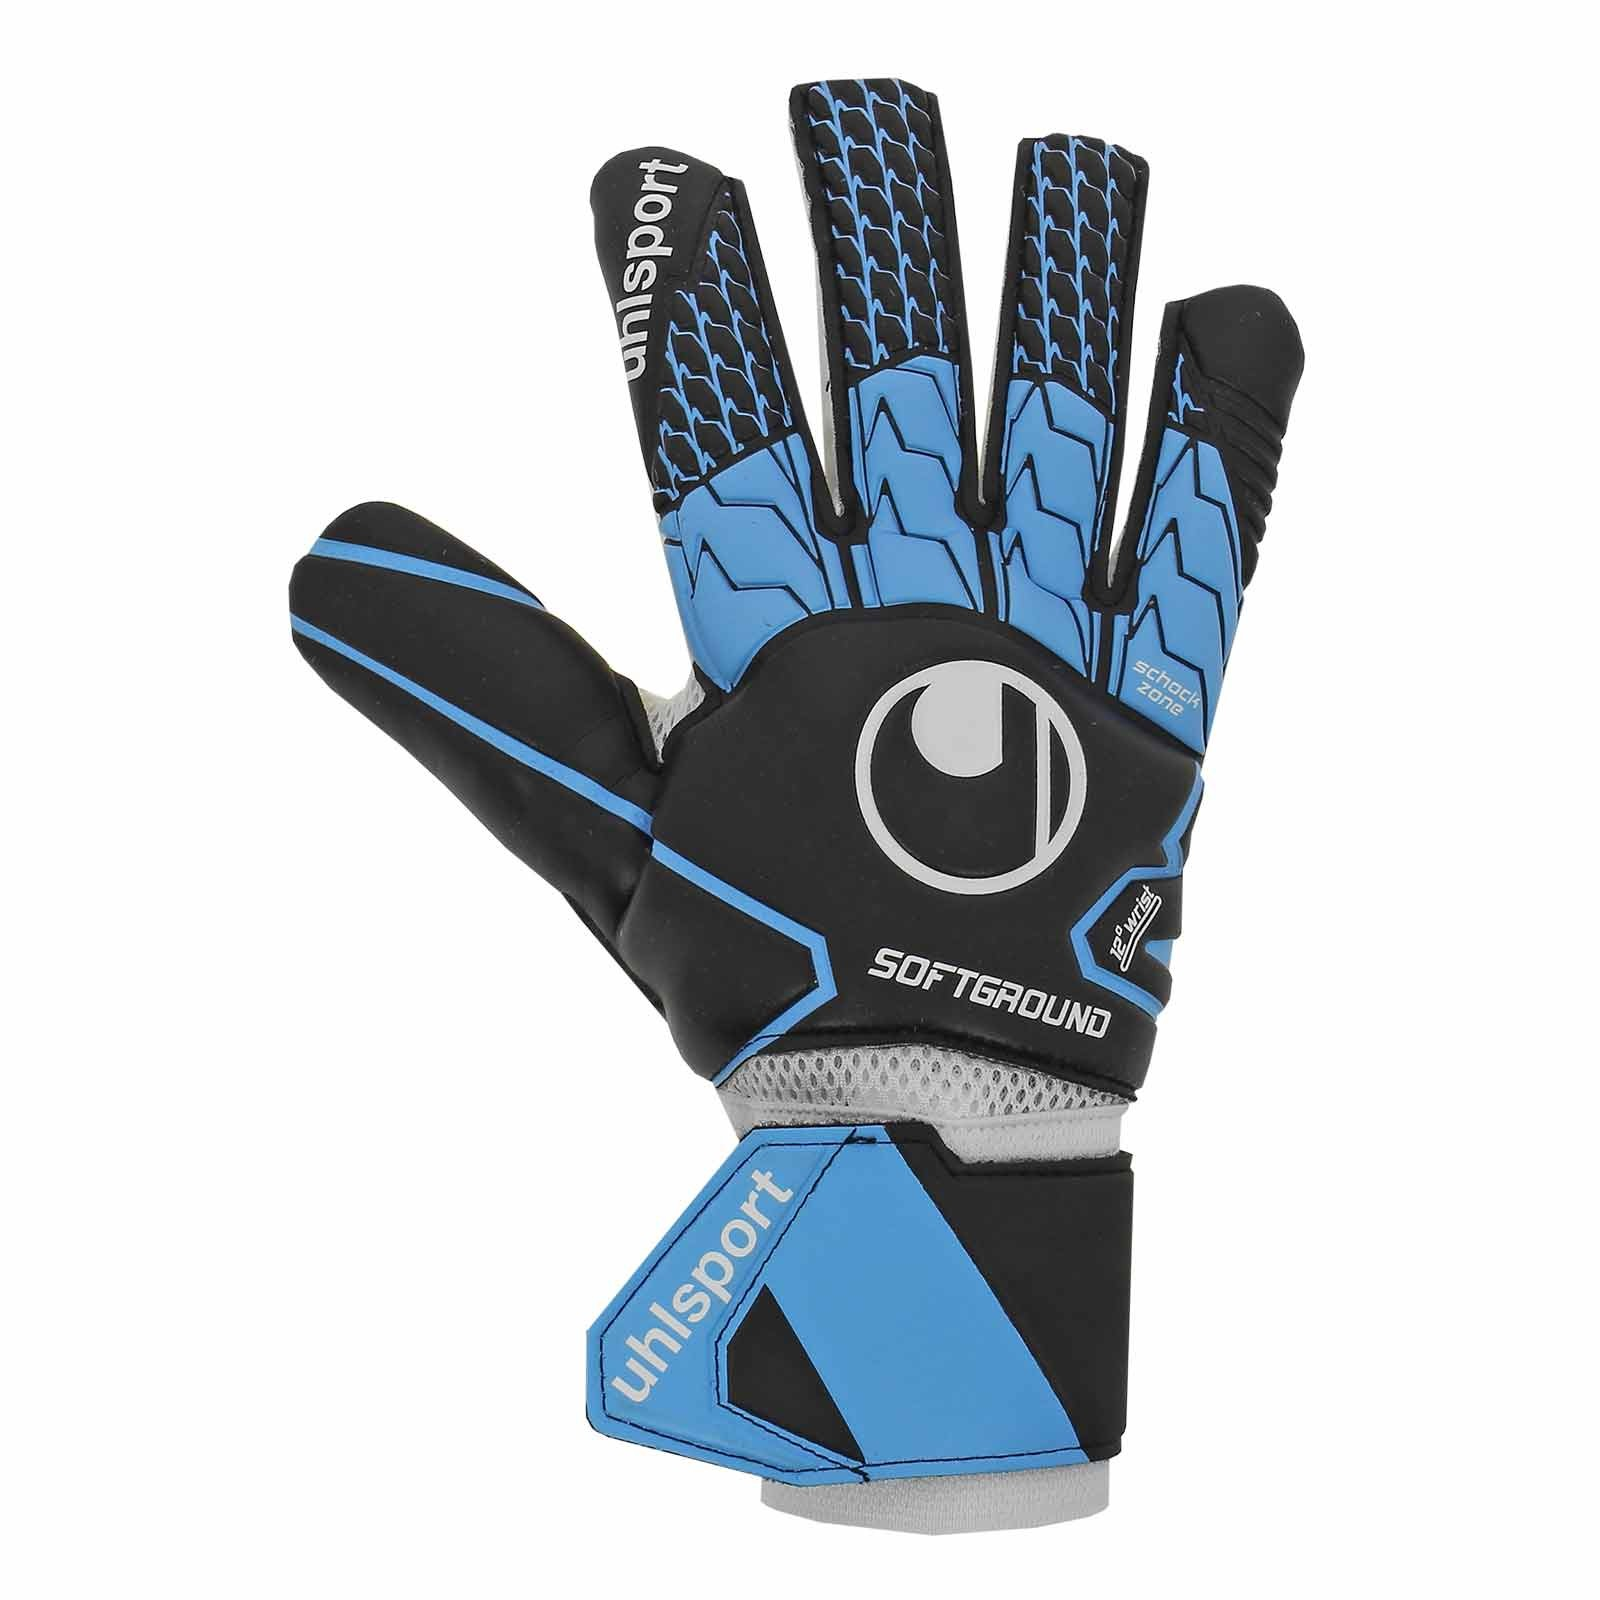 Uhlsport-SOFT-HN-Competition-Gant-de-Gardien-Keeper-Gloves-Bleu-noir